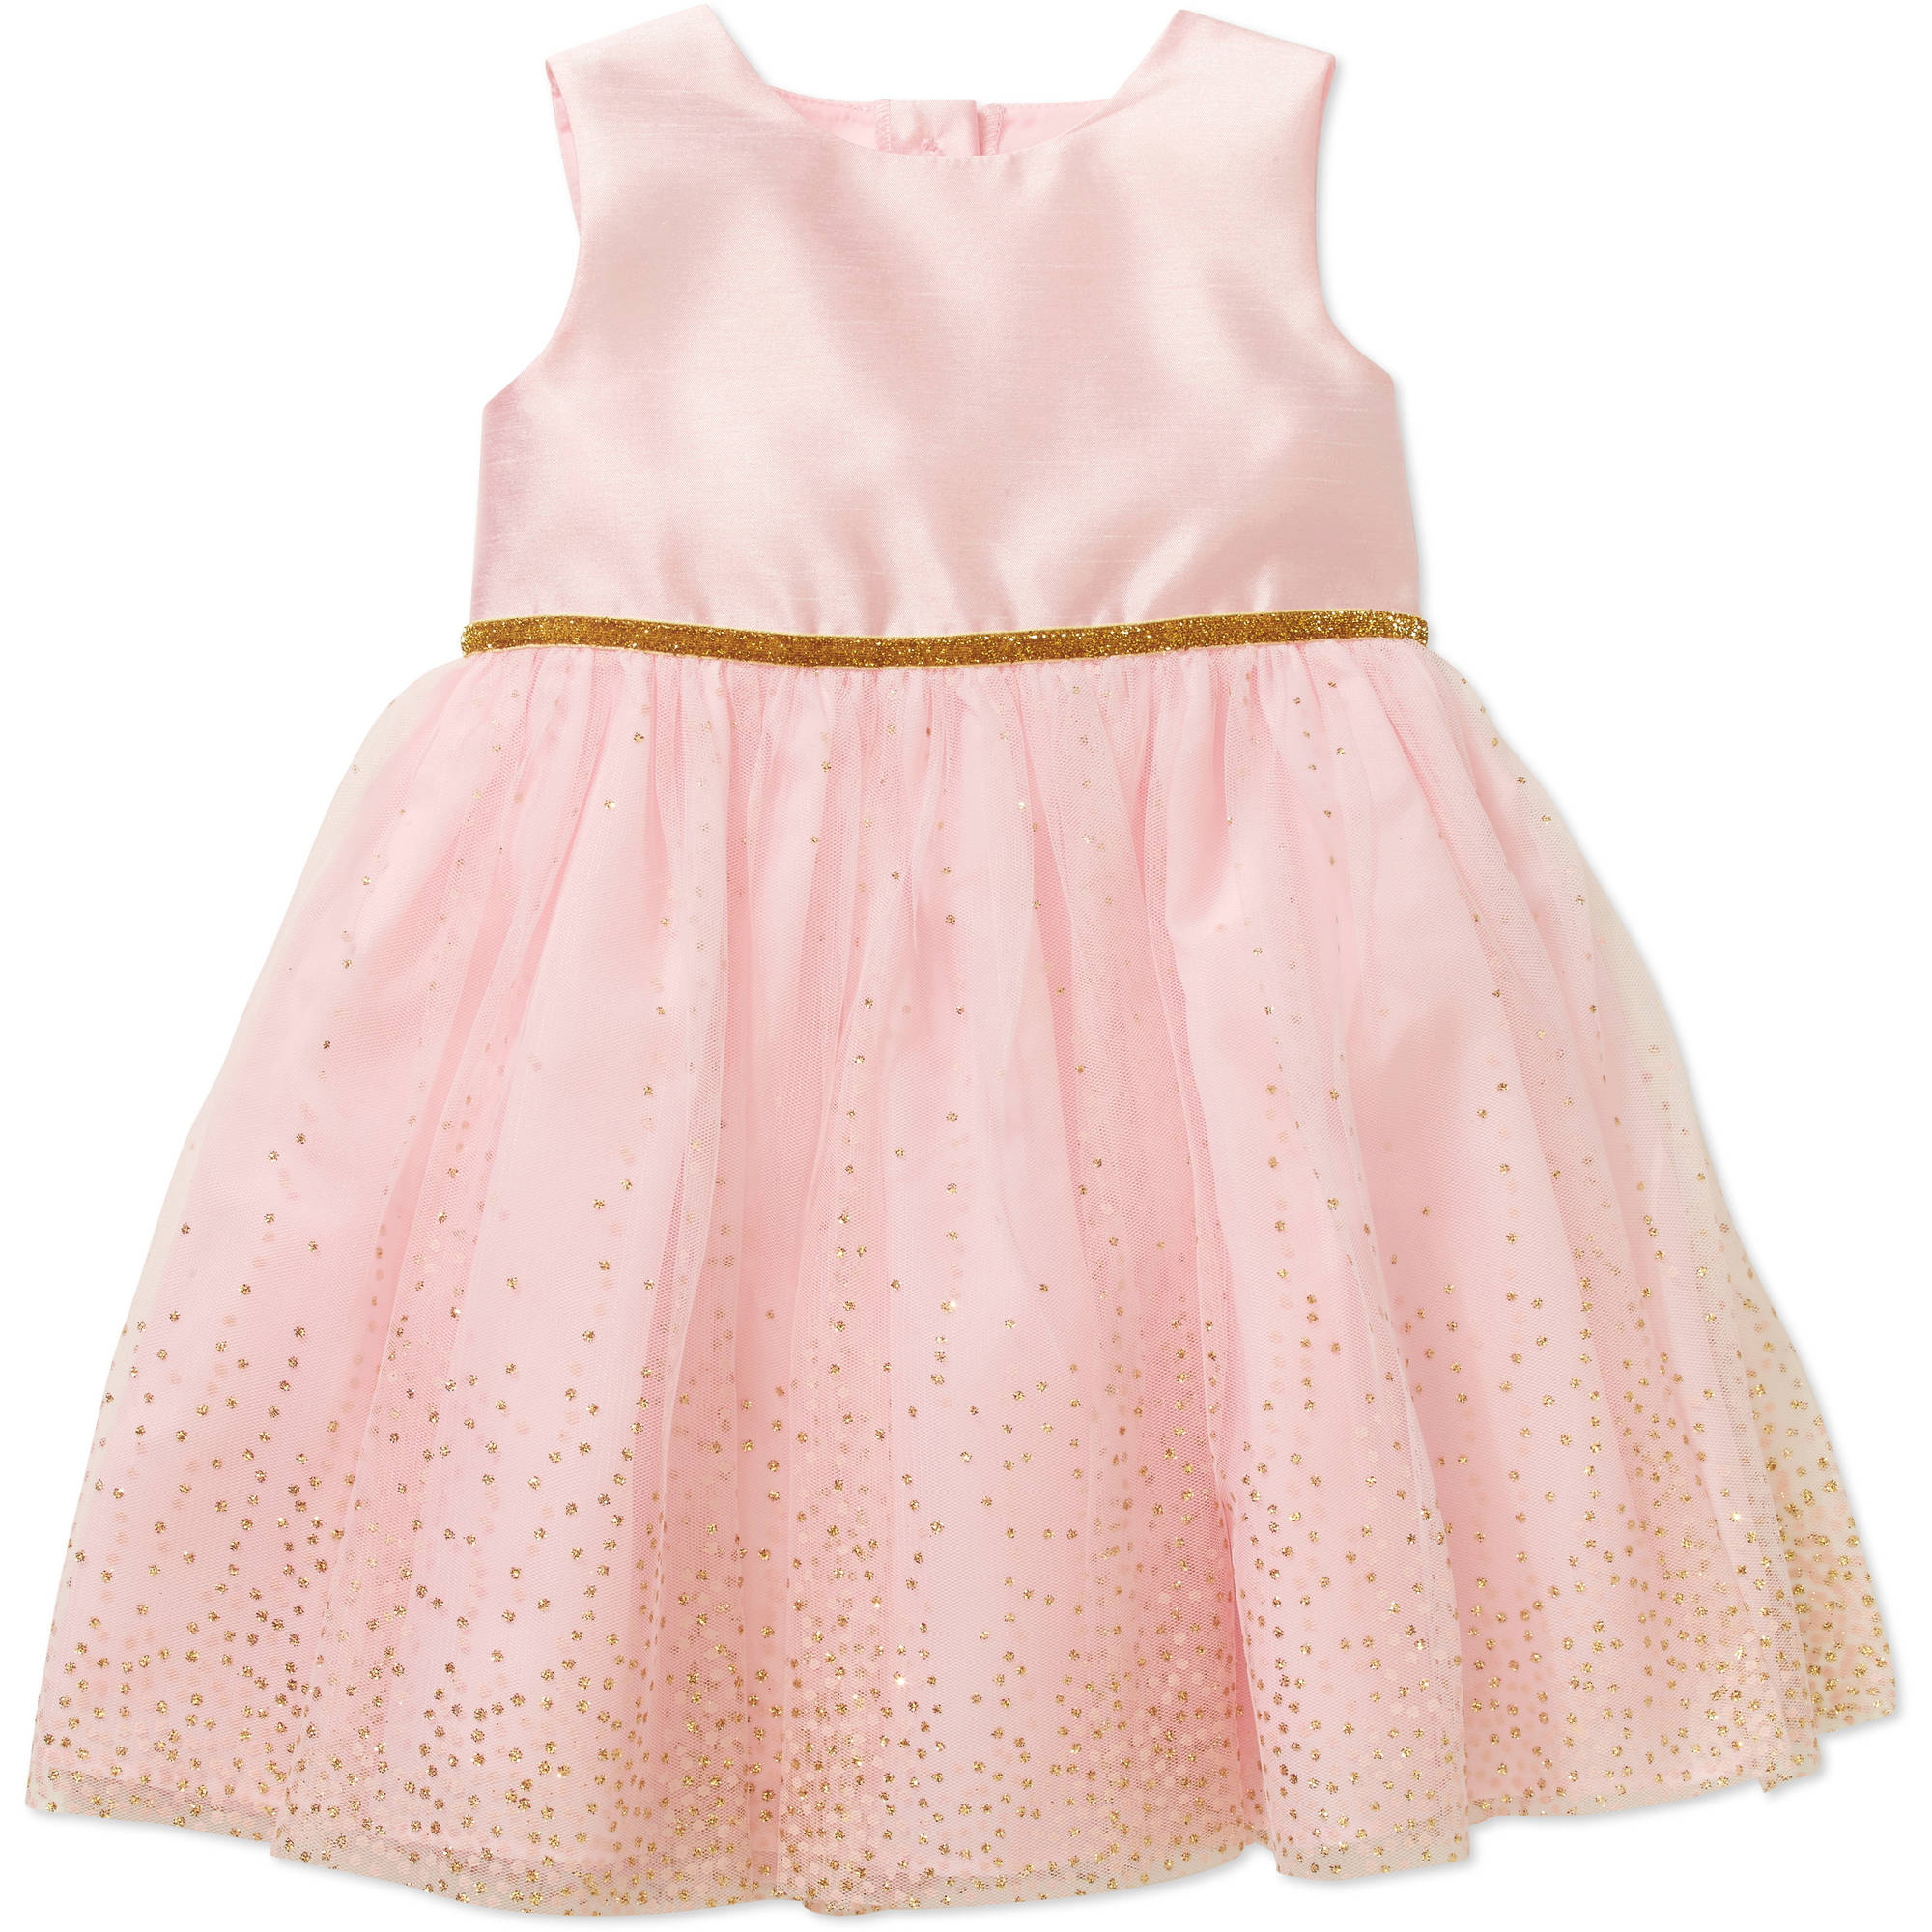 FREE Shipping & FREE Returns on Boys' & Girls' Special Occasion Dresses & Clothes. Shop now! Pick Up in Store Available.